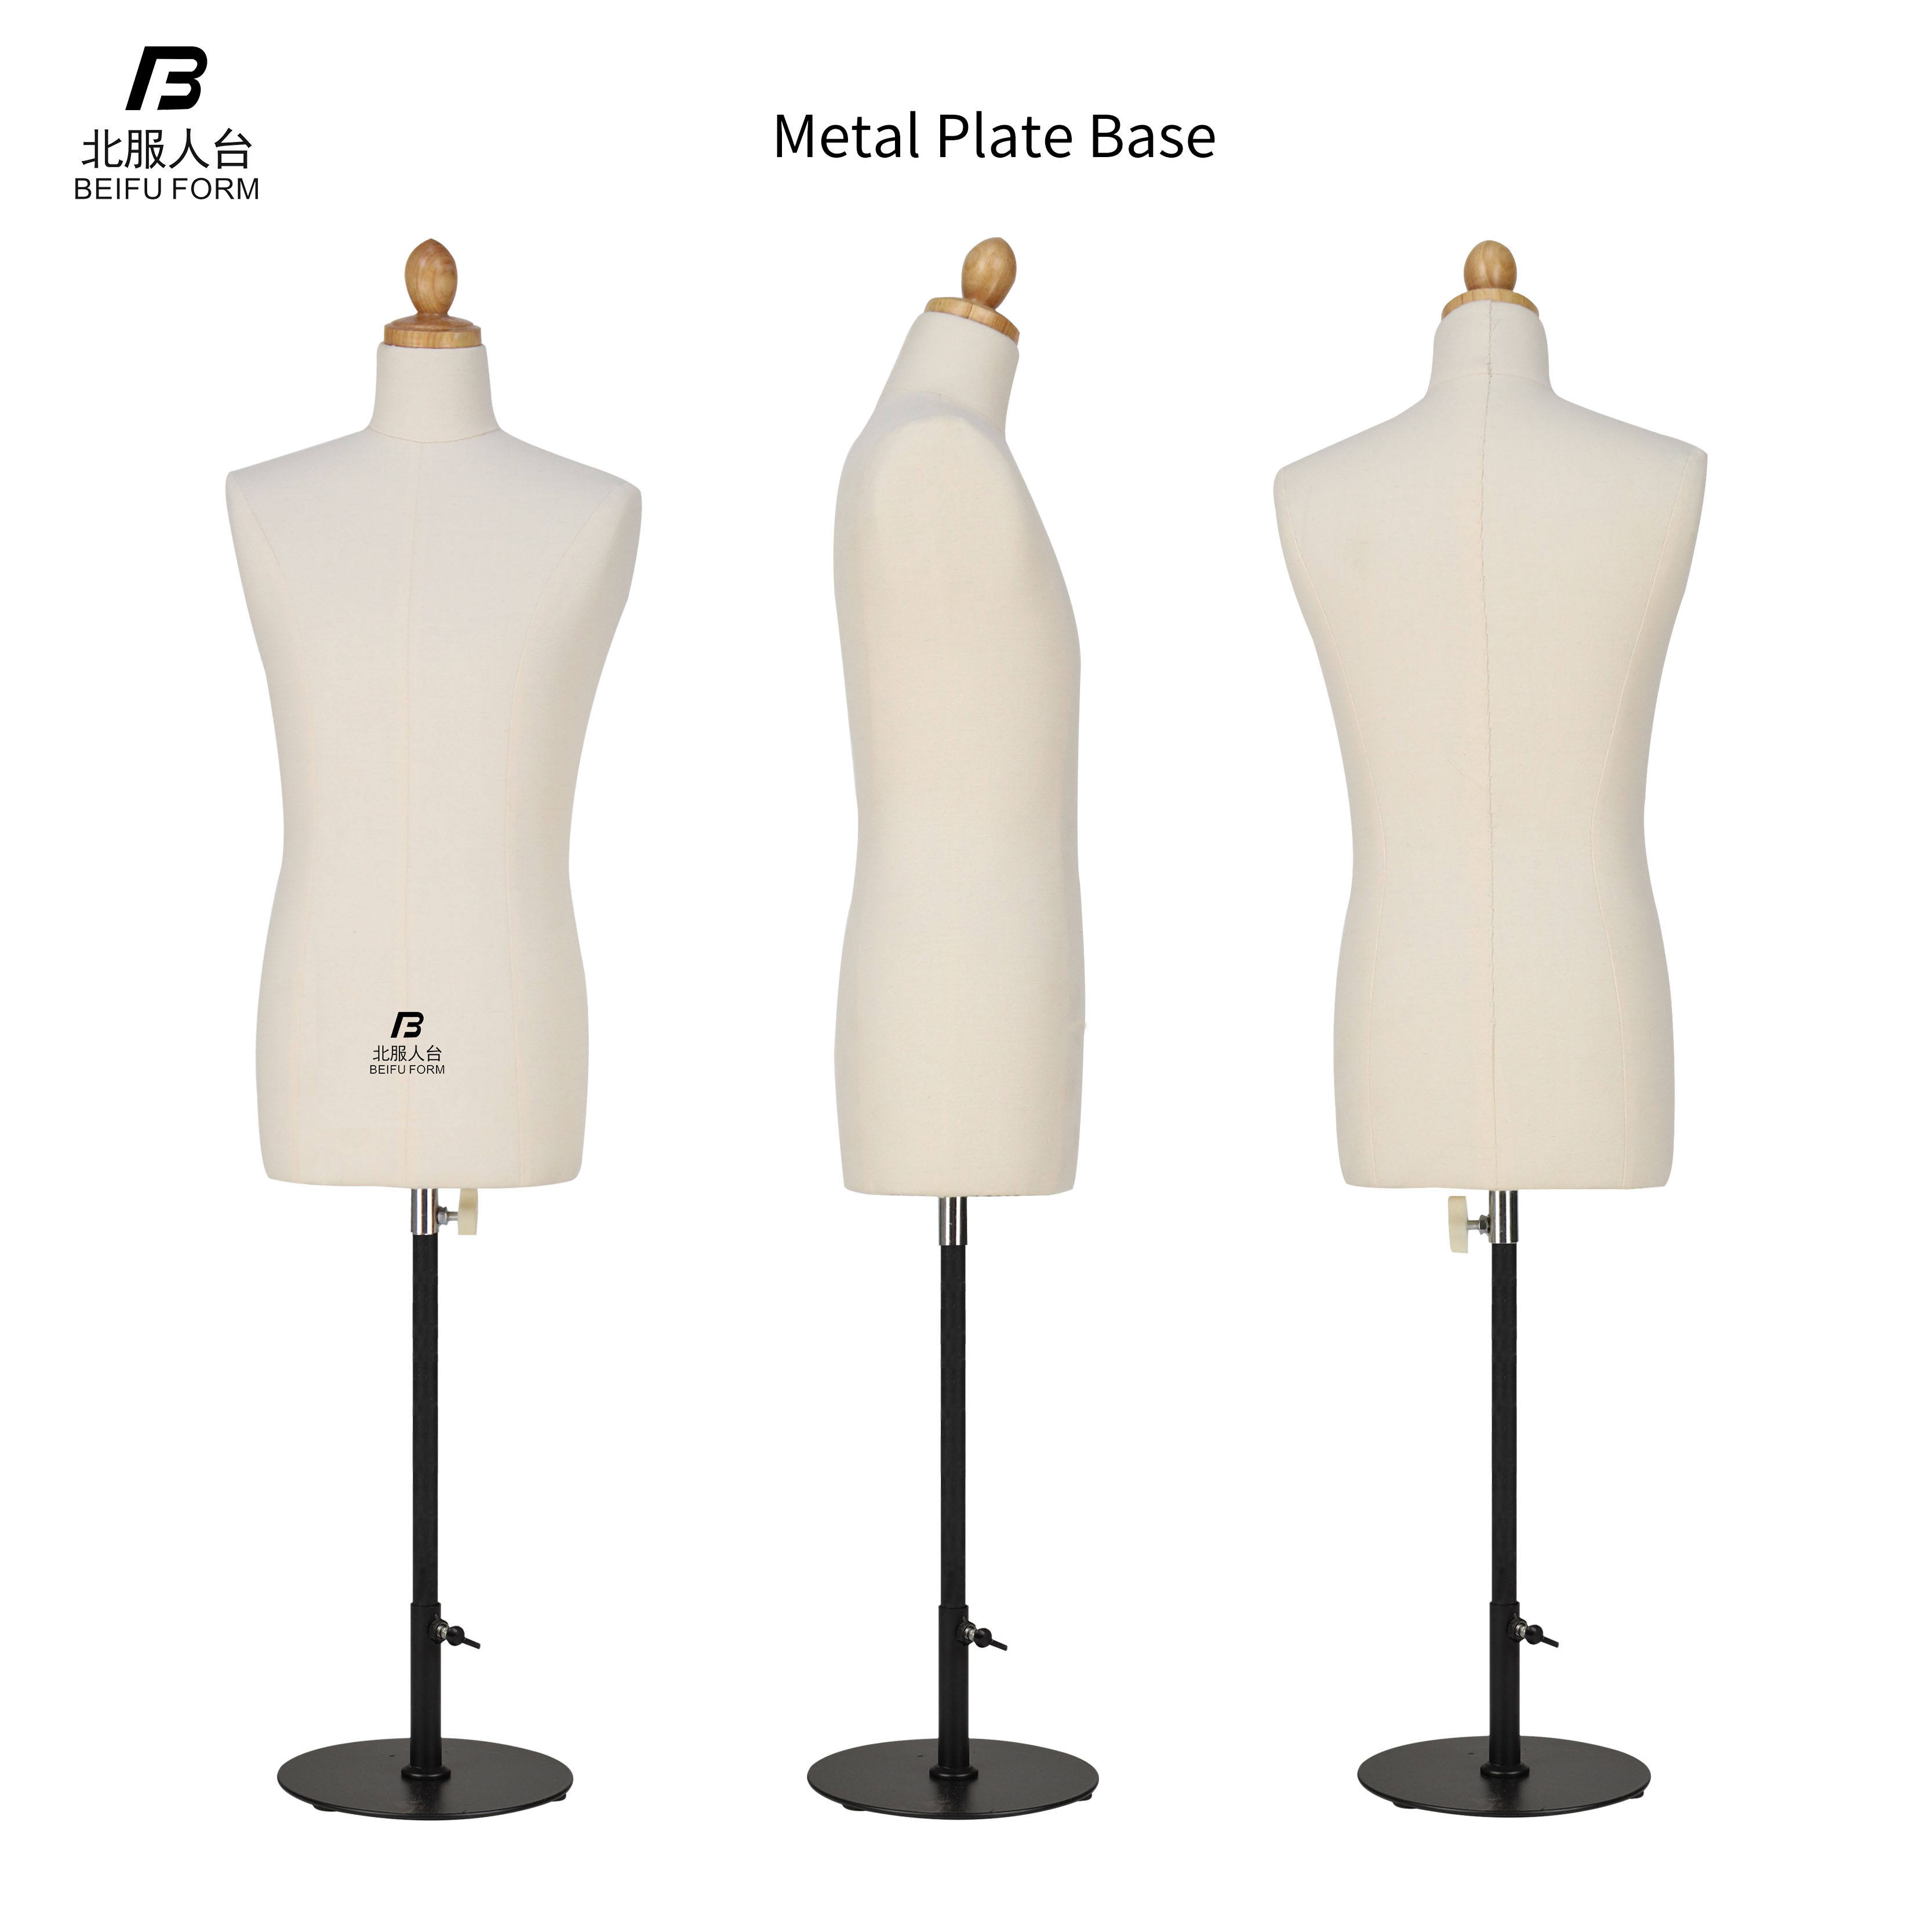 BEIFUFORM Male Dress Form for Dressmakers Men's Half Scale Mini Mannequin 1/2 Tailoring Dummy